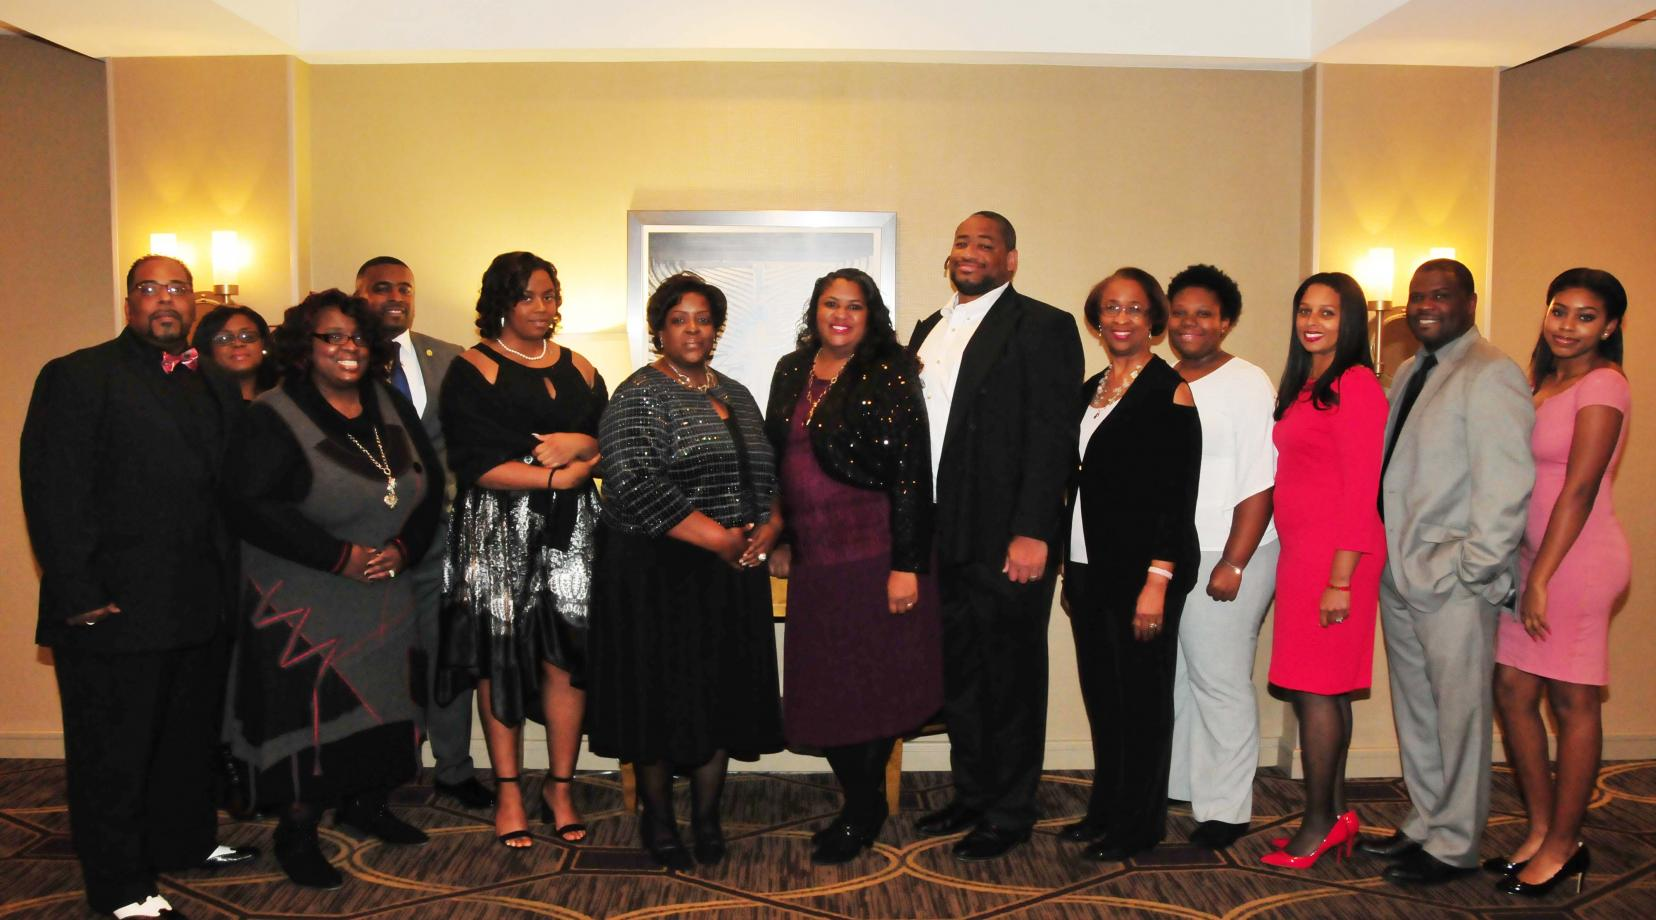 DSU's Early College High School staff and board members gathered at the Doubletree Hotel to receive an Education Award from the Wilmington Branch of the NAACP.